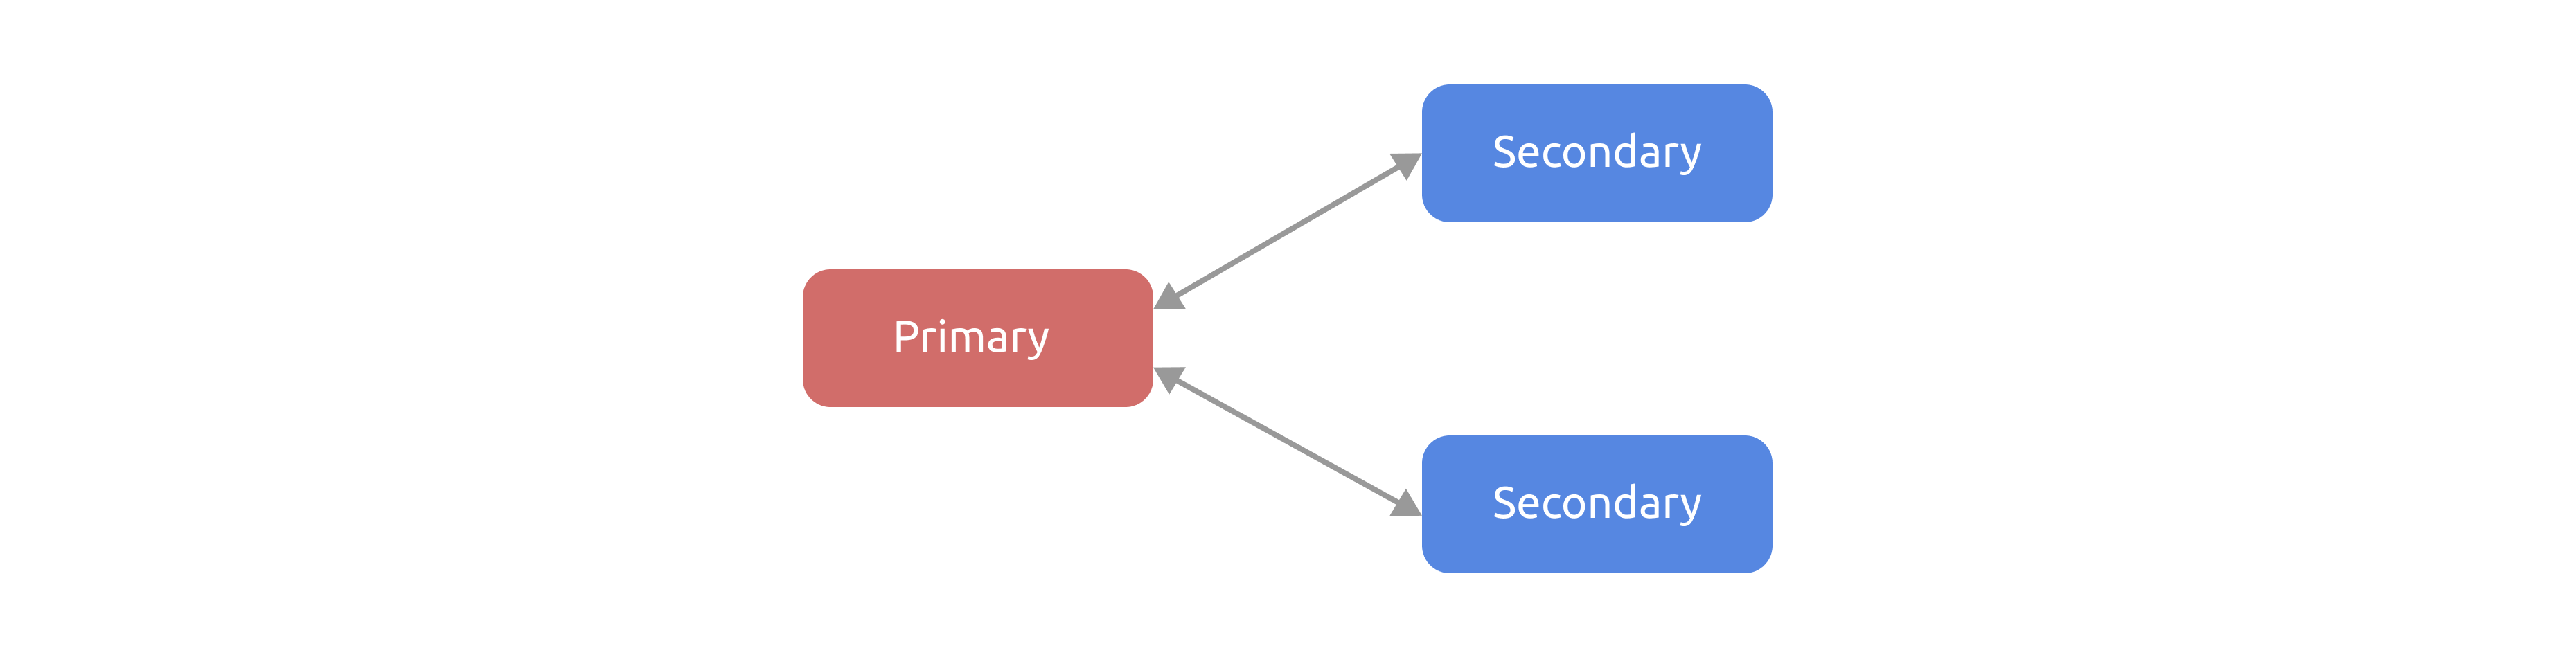 Pointers to the secondary keys